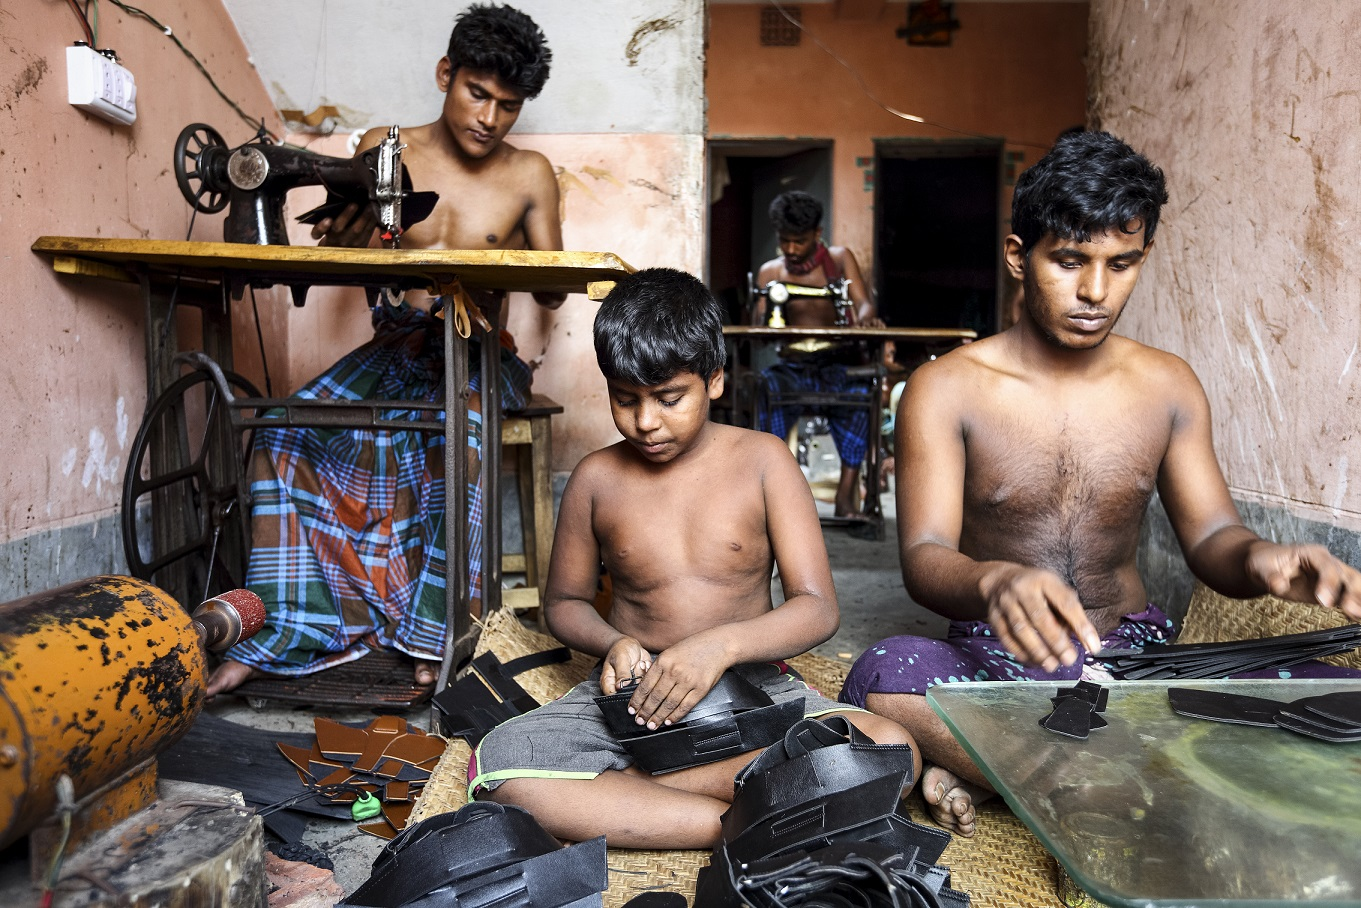 Case 24: Full name: Hasan, Age: 19, Unmarried, Experience: 5 years, Occupation: Cutting leather for making shoes, Location: Hazaribagh, 'I can hardly write my name. Without education I know I will never be able to do just any job. When getting a textile job nowadays people need education. So it is good for me that I learned this job. I worked in a tannery earlier, which is very dangerous for your health. So I started learning shoemaking. Right now I can only cut the leather according to the size and design. But with time I will learn the full process of shoemaking. My parents live in a village and I still cannot send them enough money to cover their needs. I can earn a maximum of 8000 taka a month ($100). I live in this room with my five other colleague shoemakers. It is very hard to sleep during summer nights without a fan in this overcrowded room. But I cannot spend more than this with the money I make on accommodation and food. My colleagues say there is no future in this job but I hold my faith tightly; things will become better with time.'